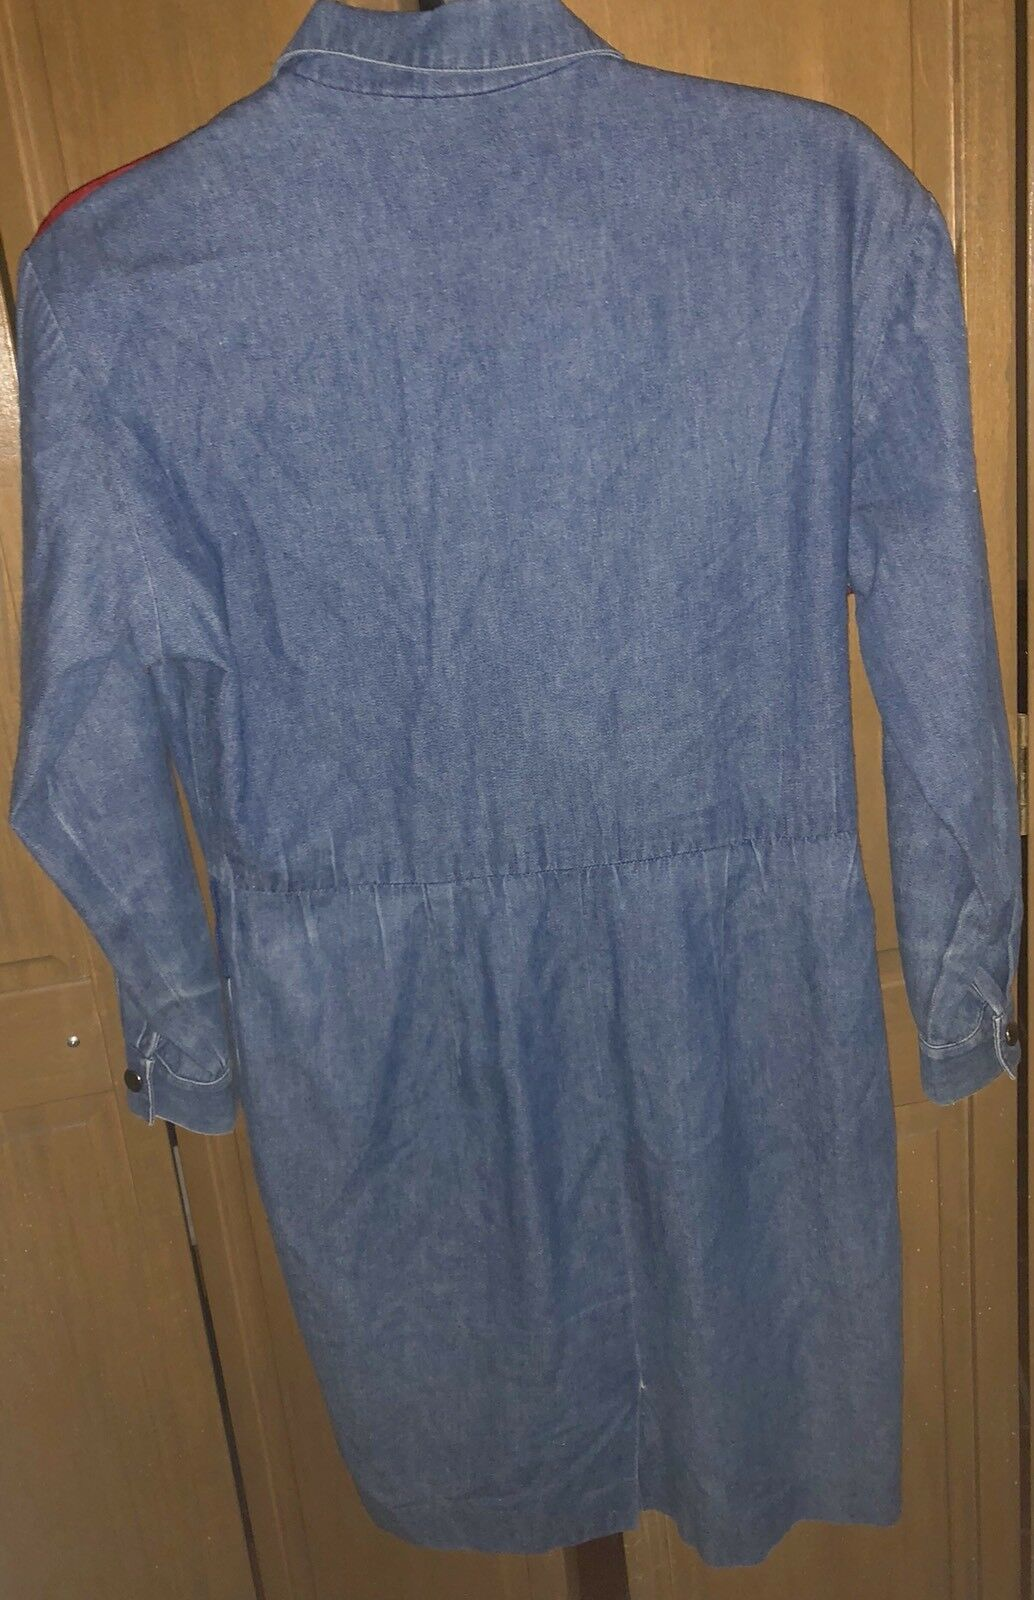 Vintage Adam Douglass Adrianna Papell Denim Southwest Embellished Dress Sz 4